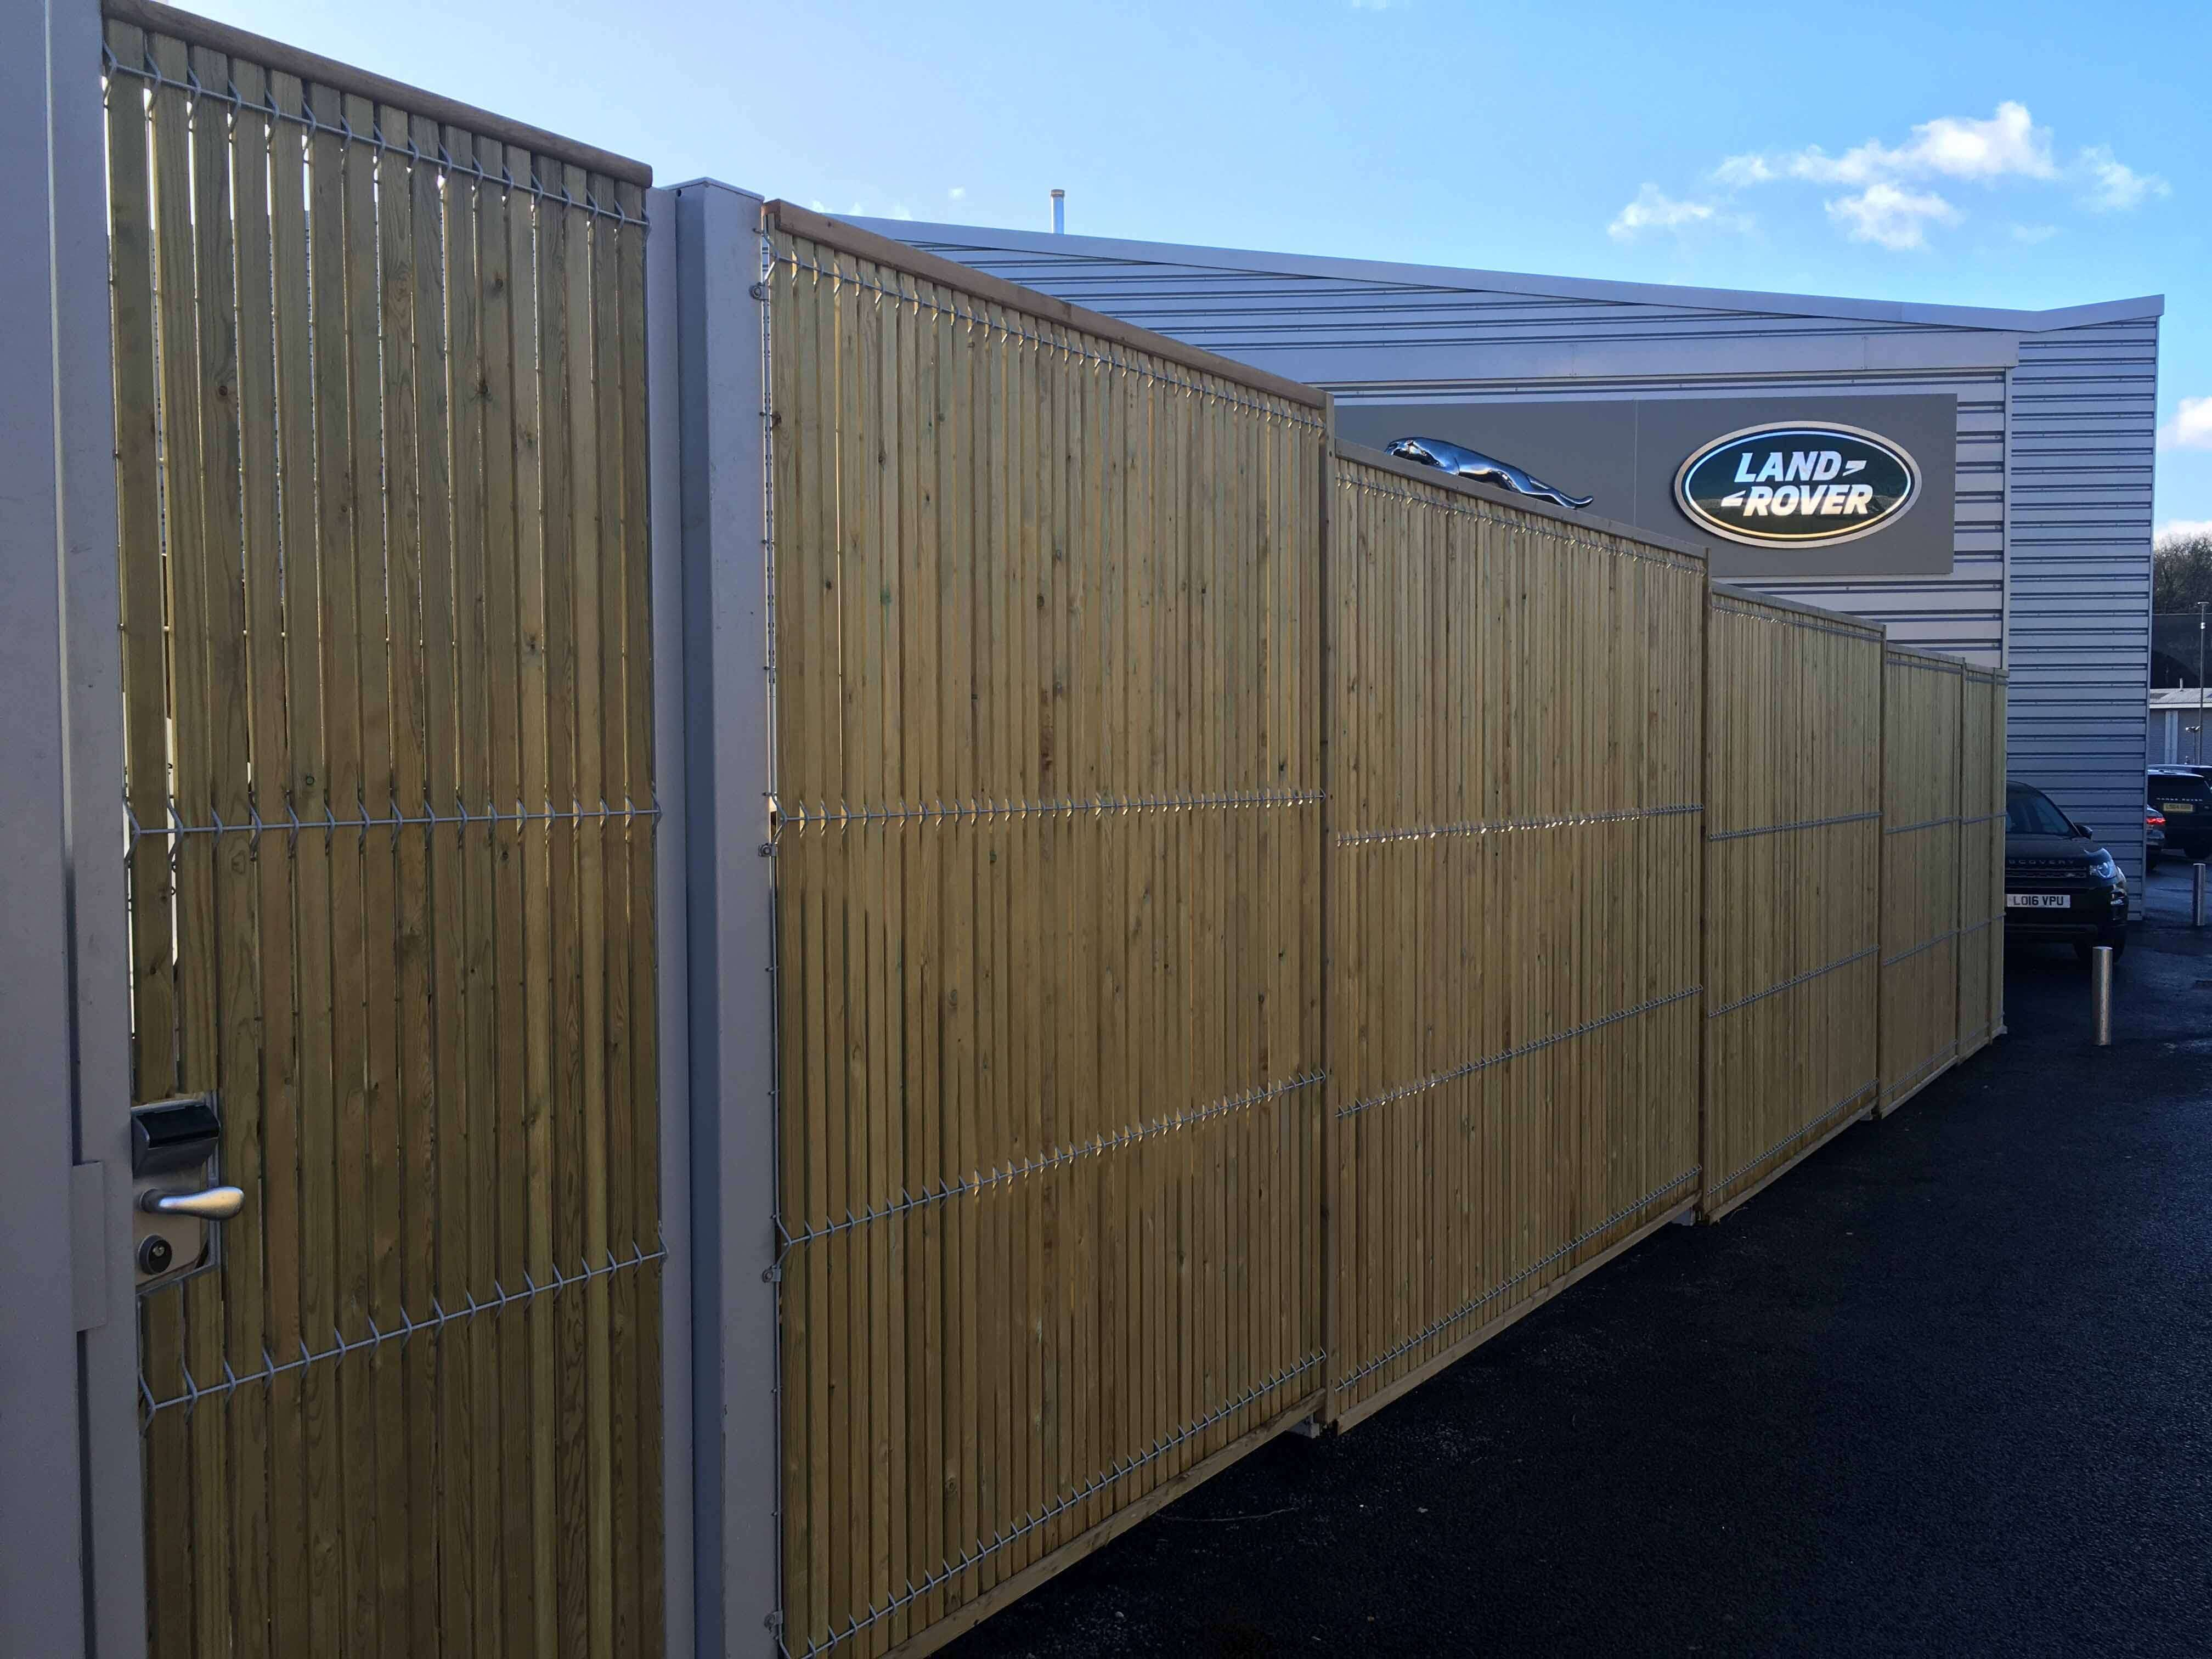 Commercial property fencing